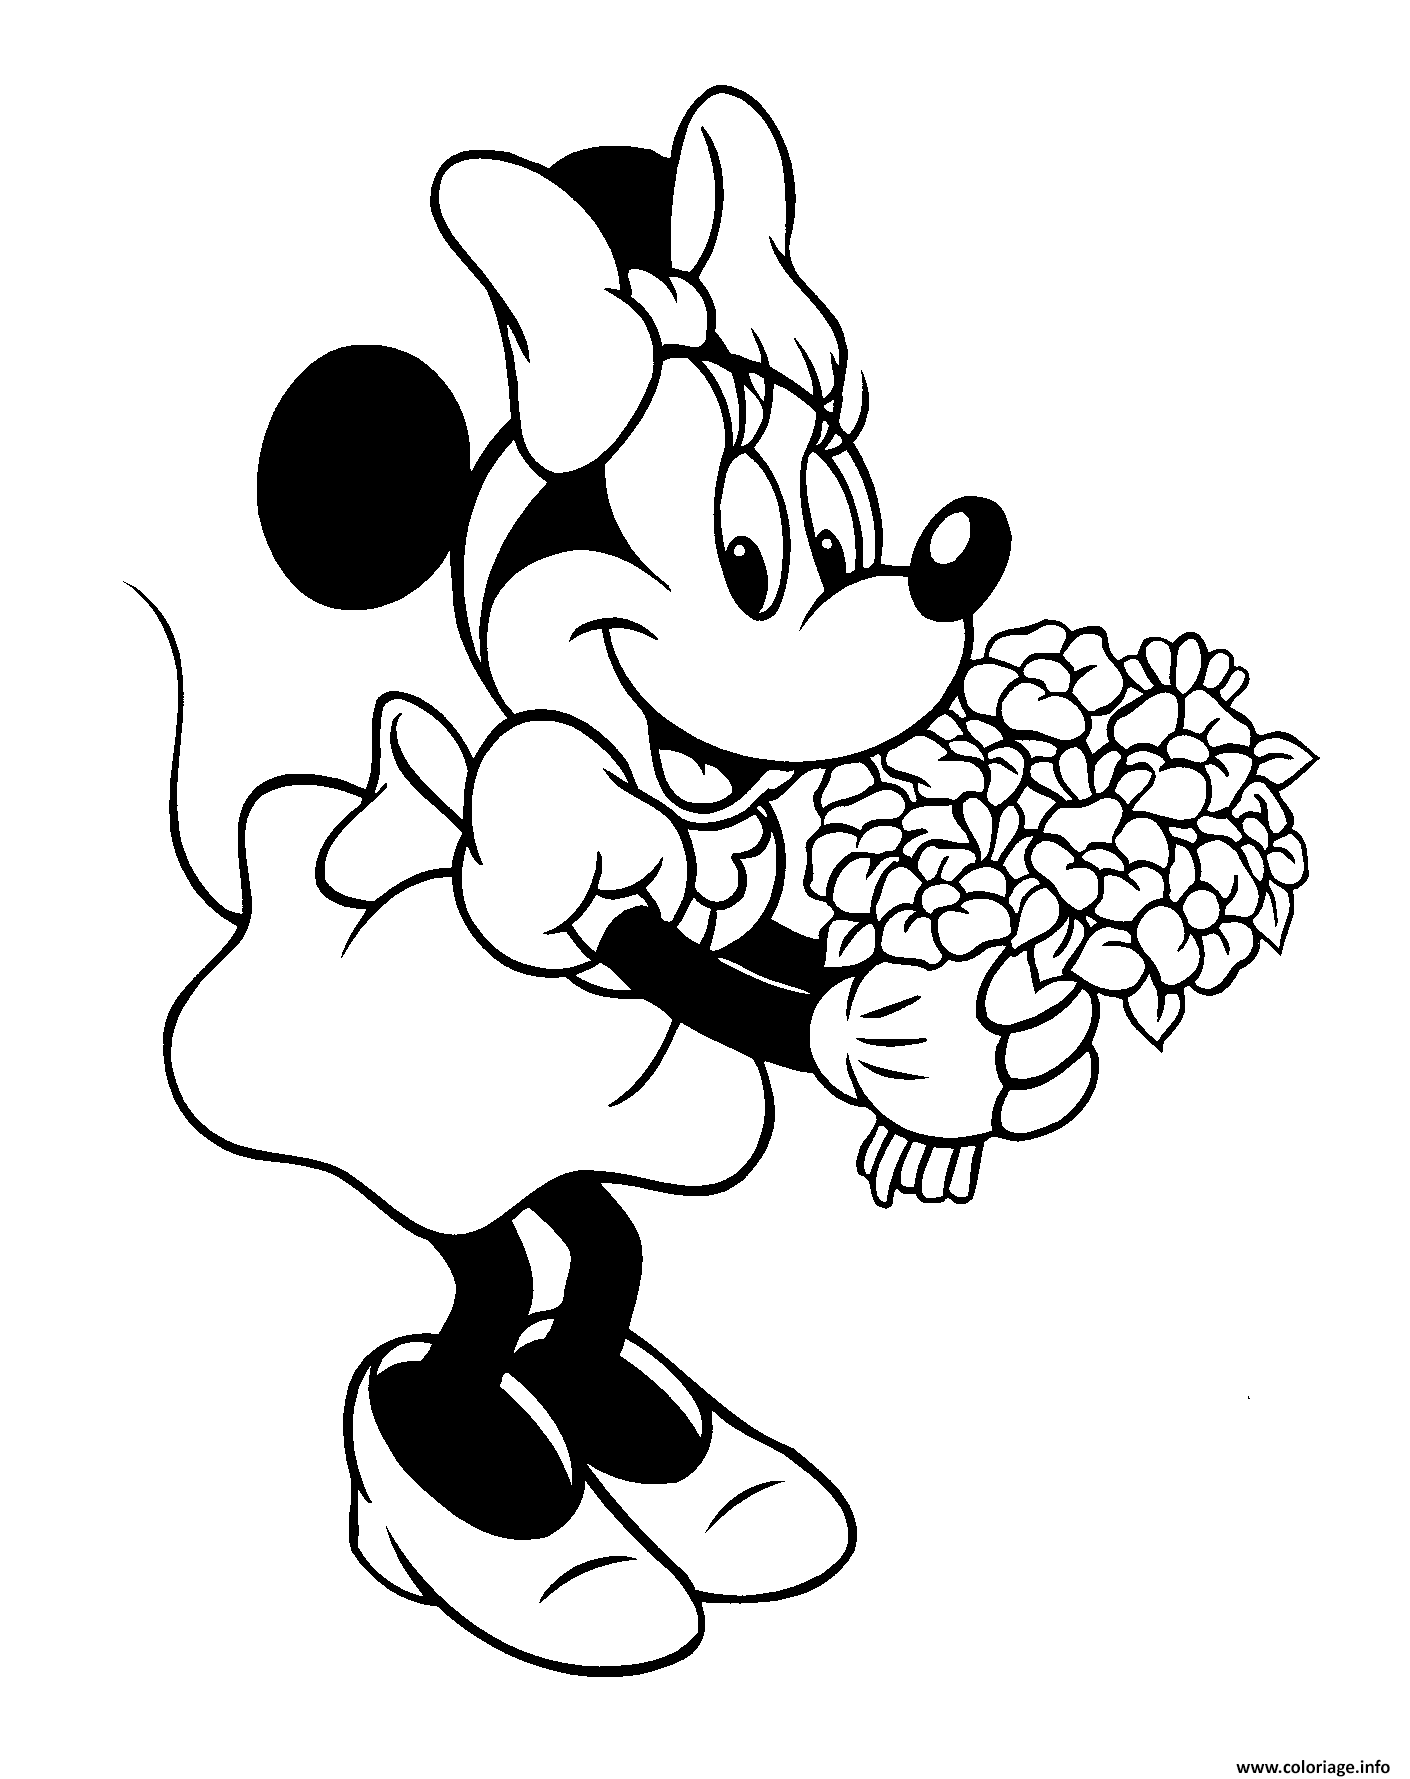 Coloriage A Imprimer Minnie.Coloriage Minnie Mouse Bouquet De Fleurs Disney Jecolorie Com